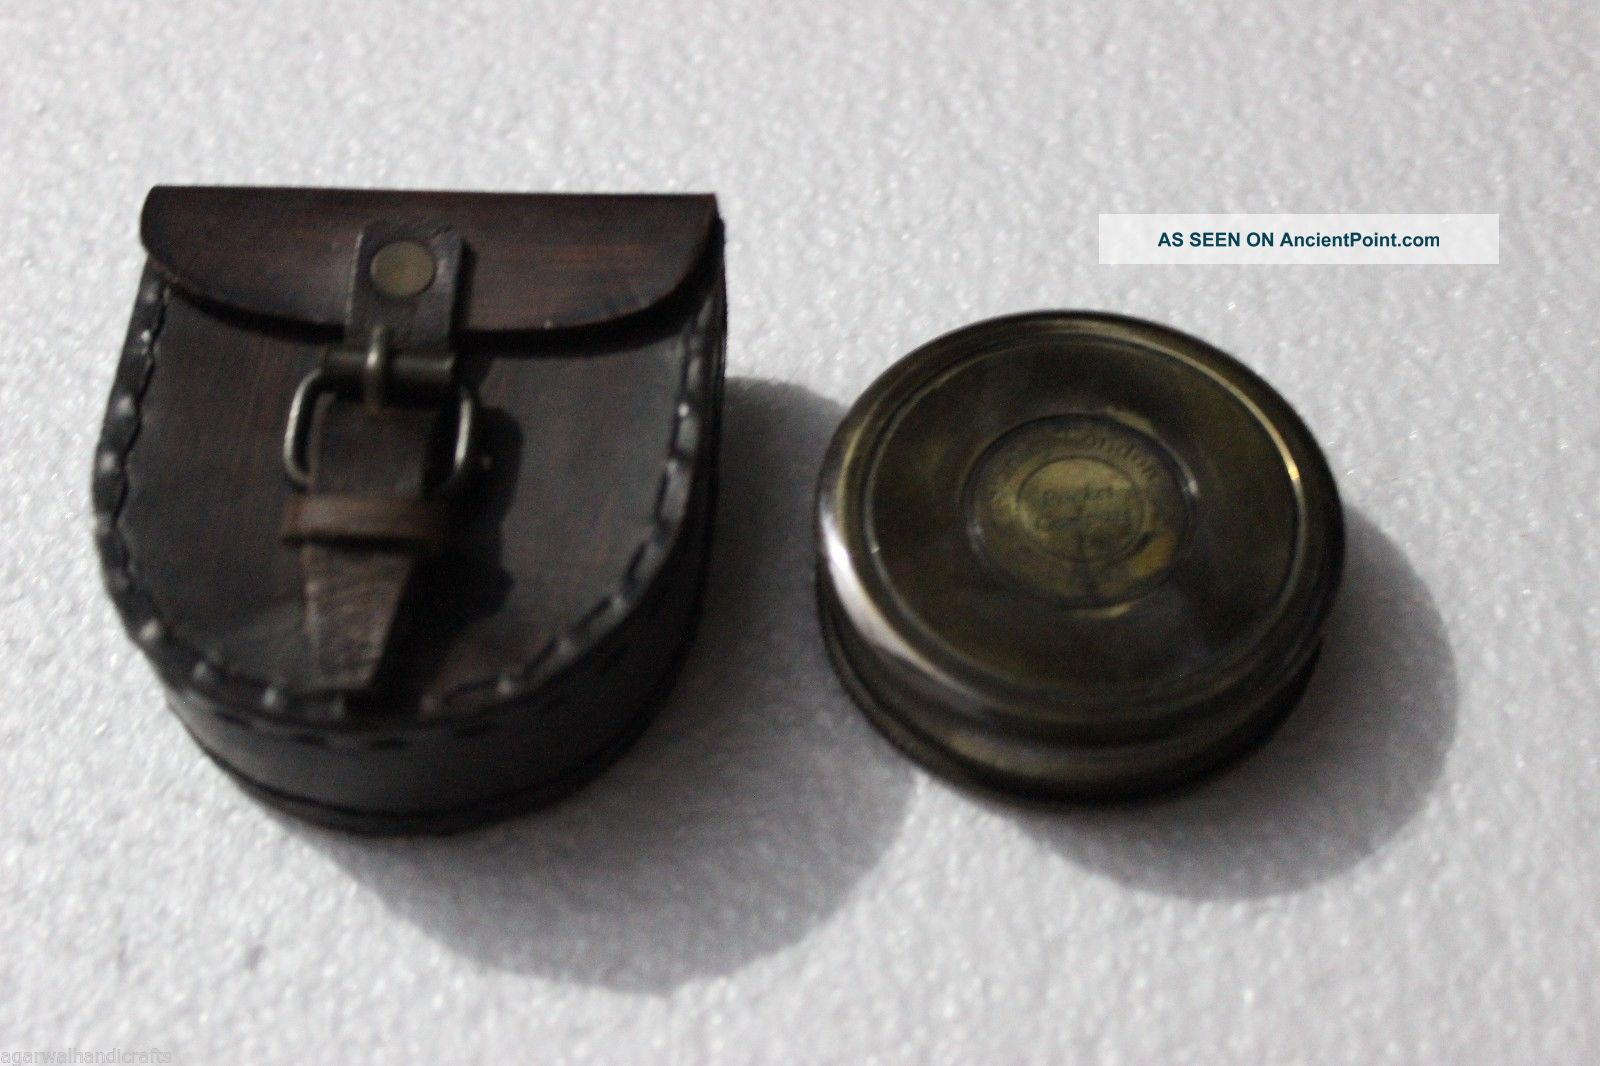 Antique Brass Poem Compass Pocket Compass Robert Frost Maritime Brass Compass Compasses photo